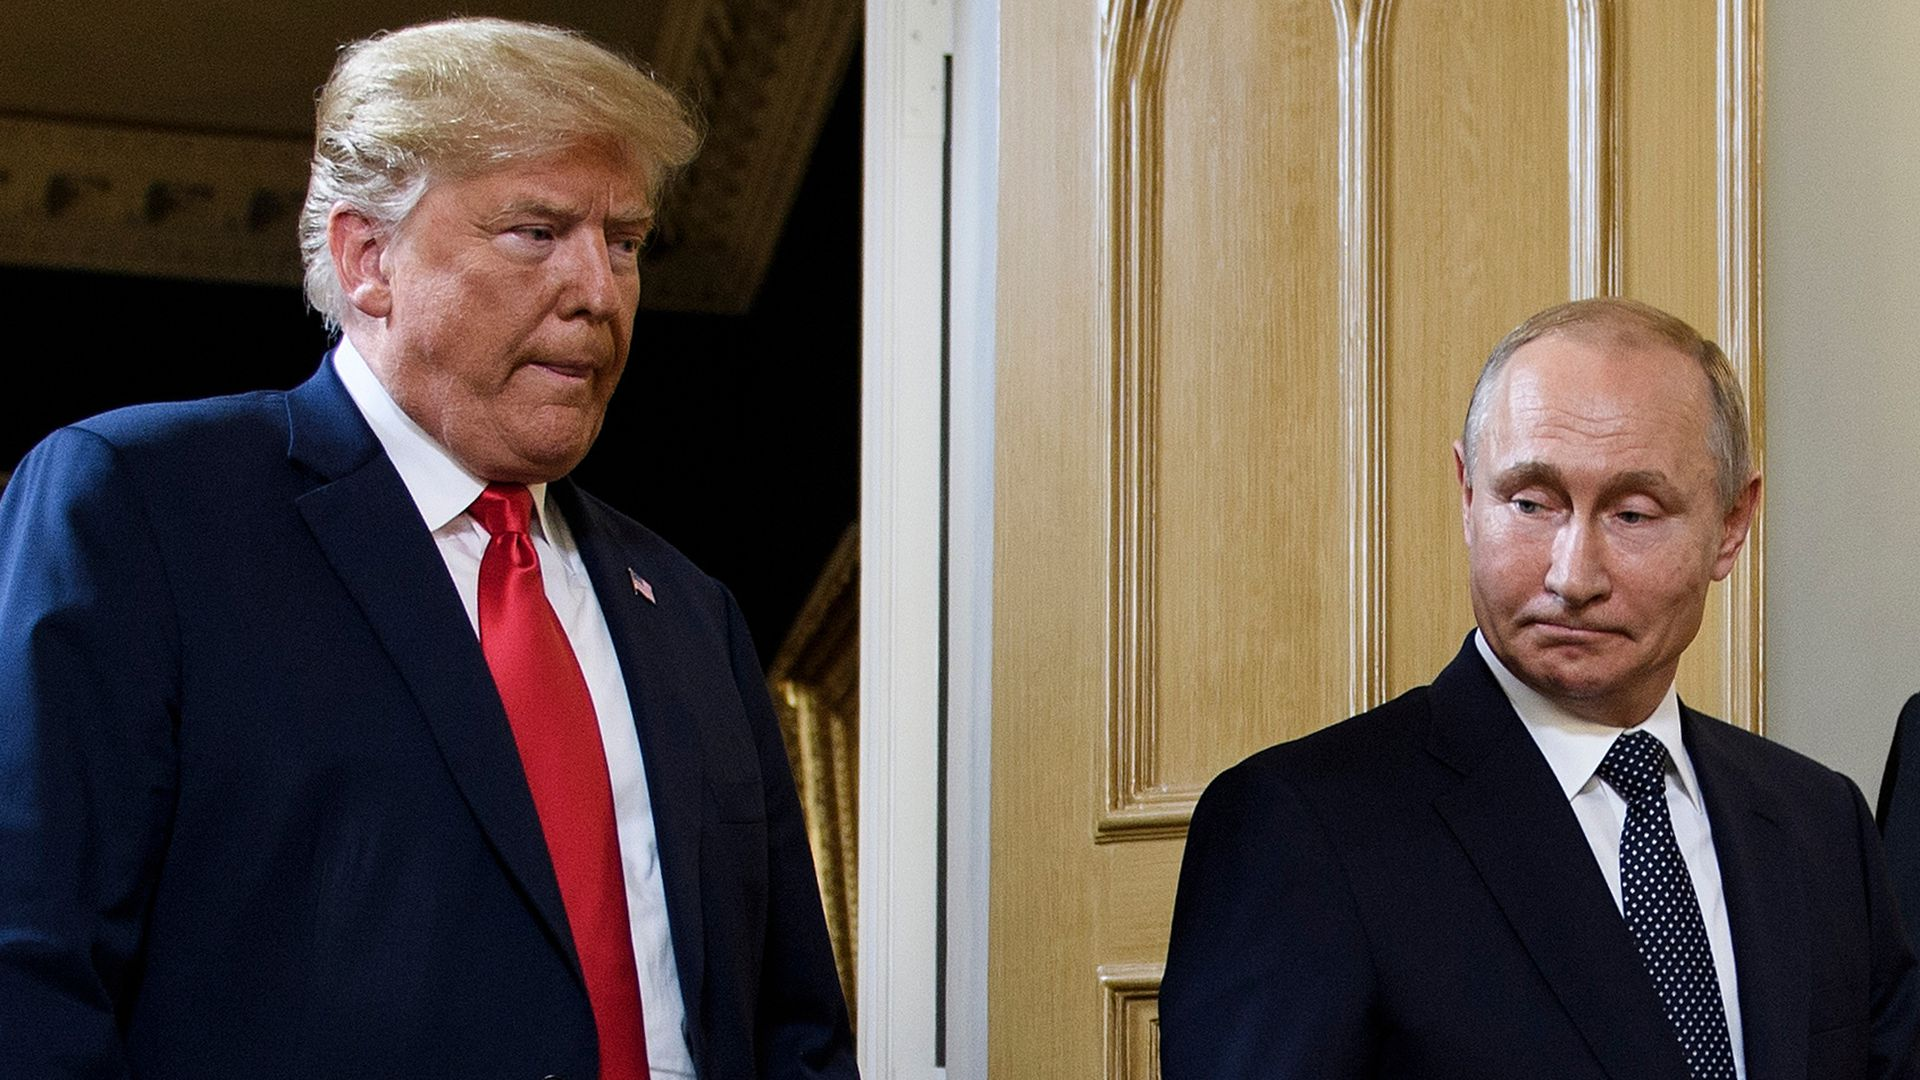 President Trump and Russian President Vladimir Putin arrive for a meeting in Helsinki.